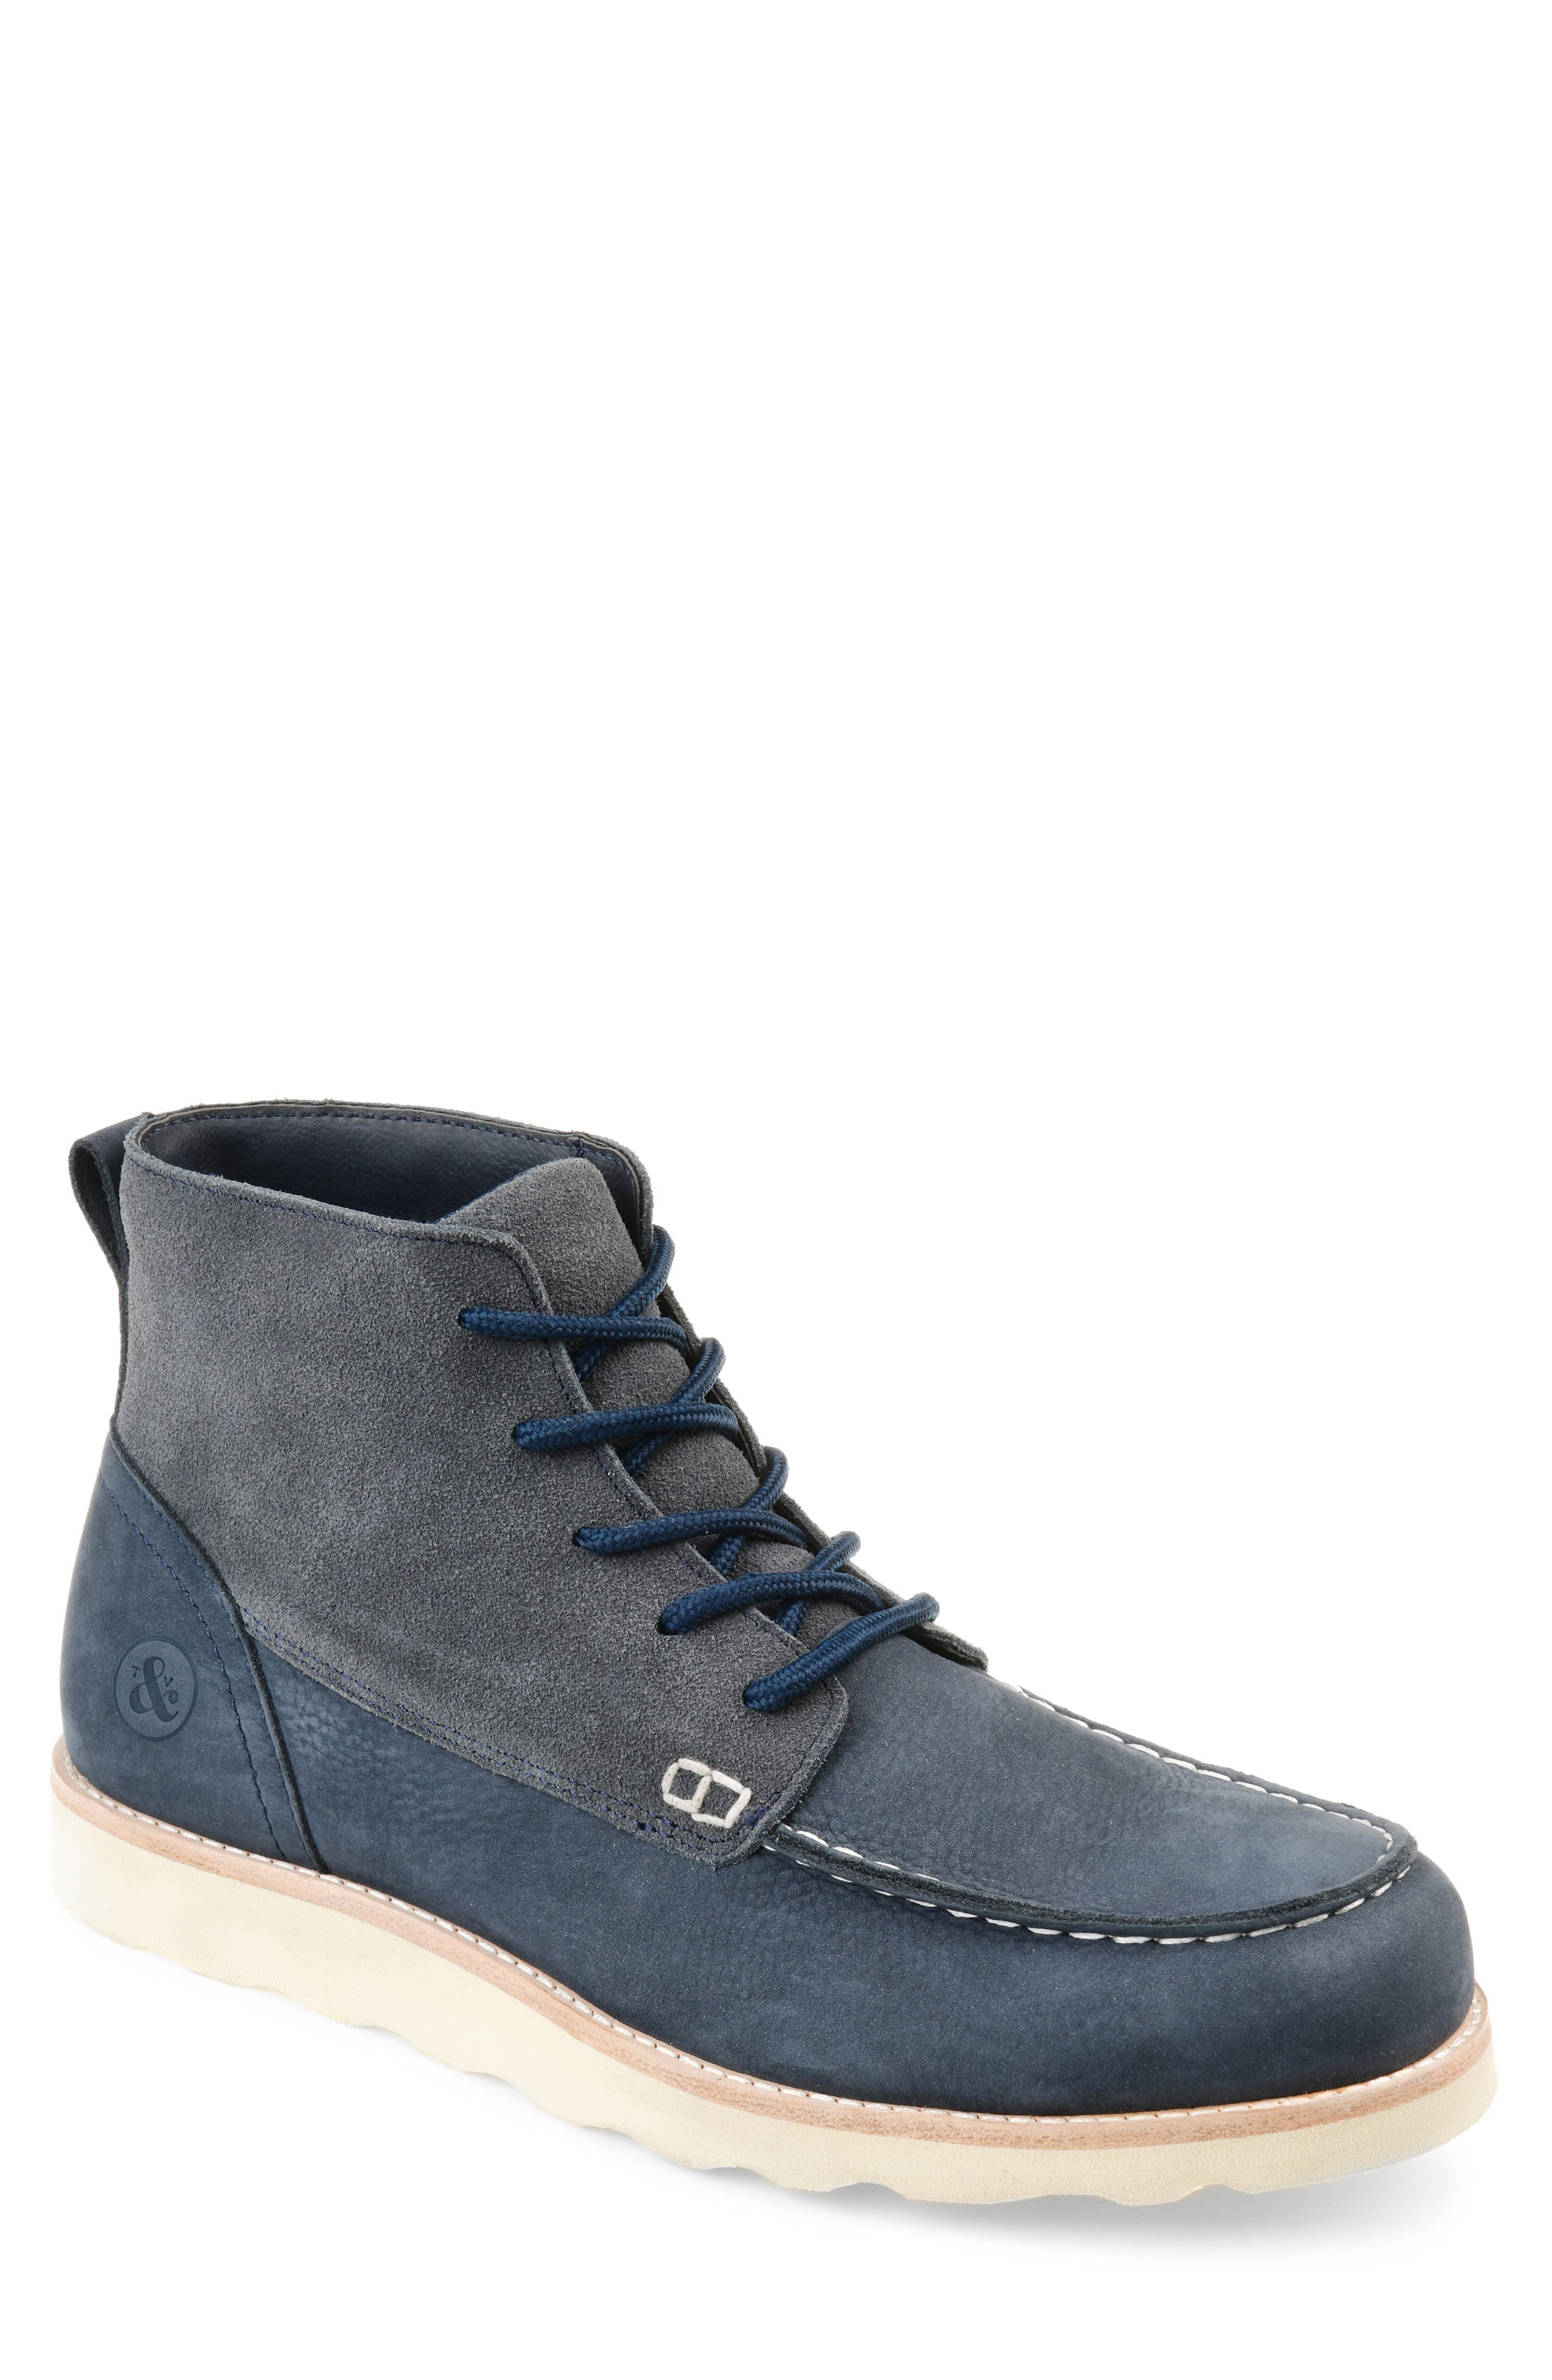 A fusion of suede and leather defines a ruggedly handsome boot set on a smart, lightweight contrast sole. Style Name: Thomas & Vine Spartan Moc Toe Boot (Men). Style Number: 5715645 1. Available in stores.